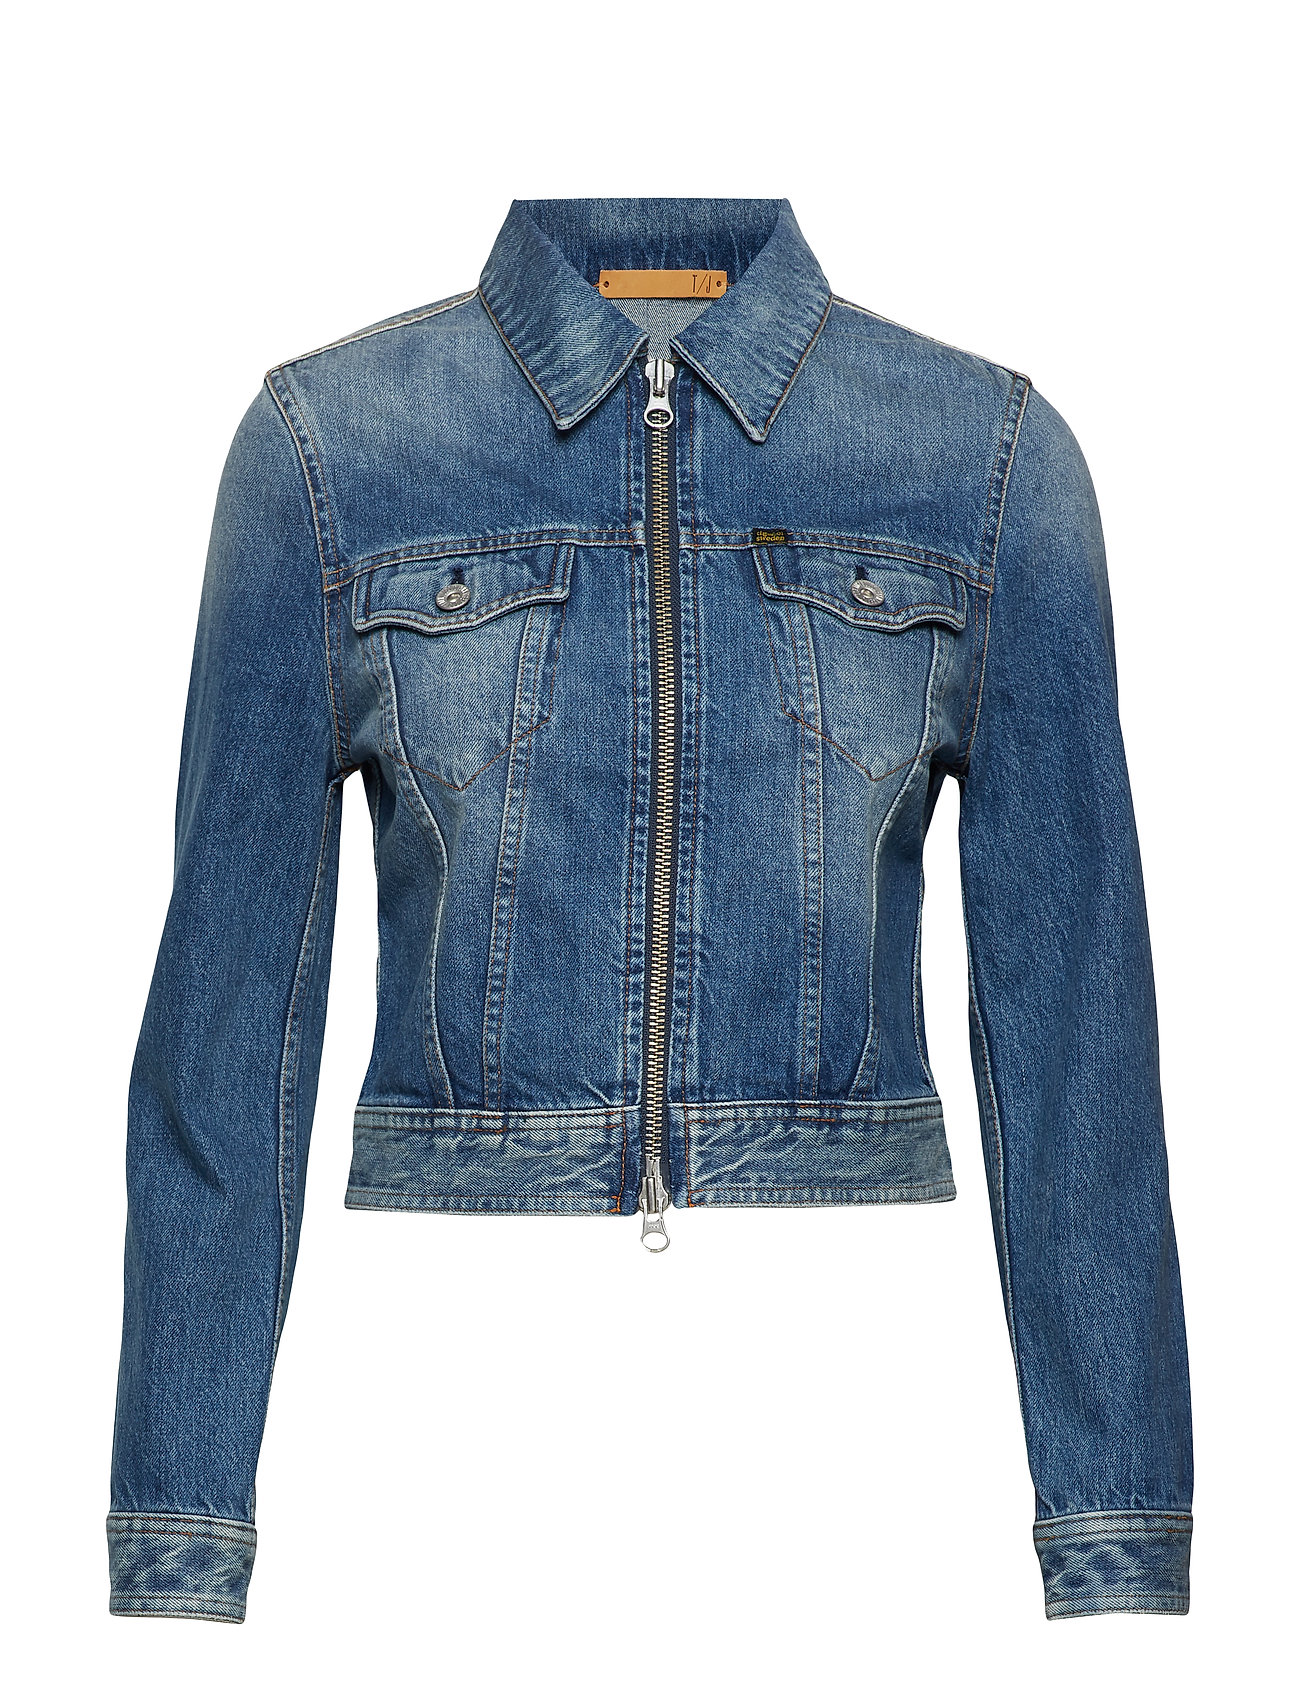 TIGER OF SWEDEN Jacken & Blazer | Truth Zip Jeansjacke Denimjacke Blau TIGER OF SWEDEN JEANS